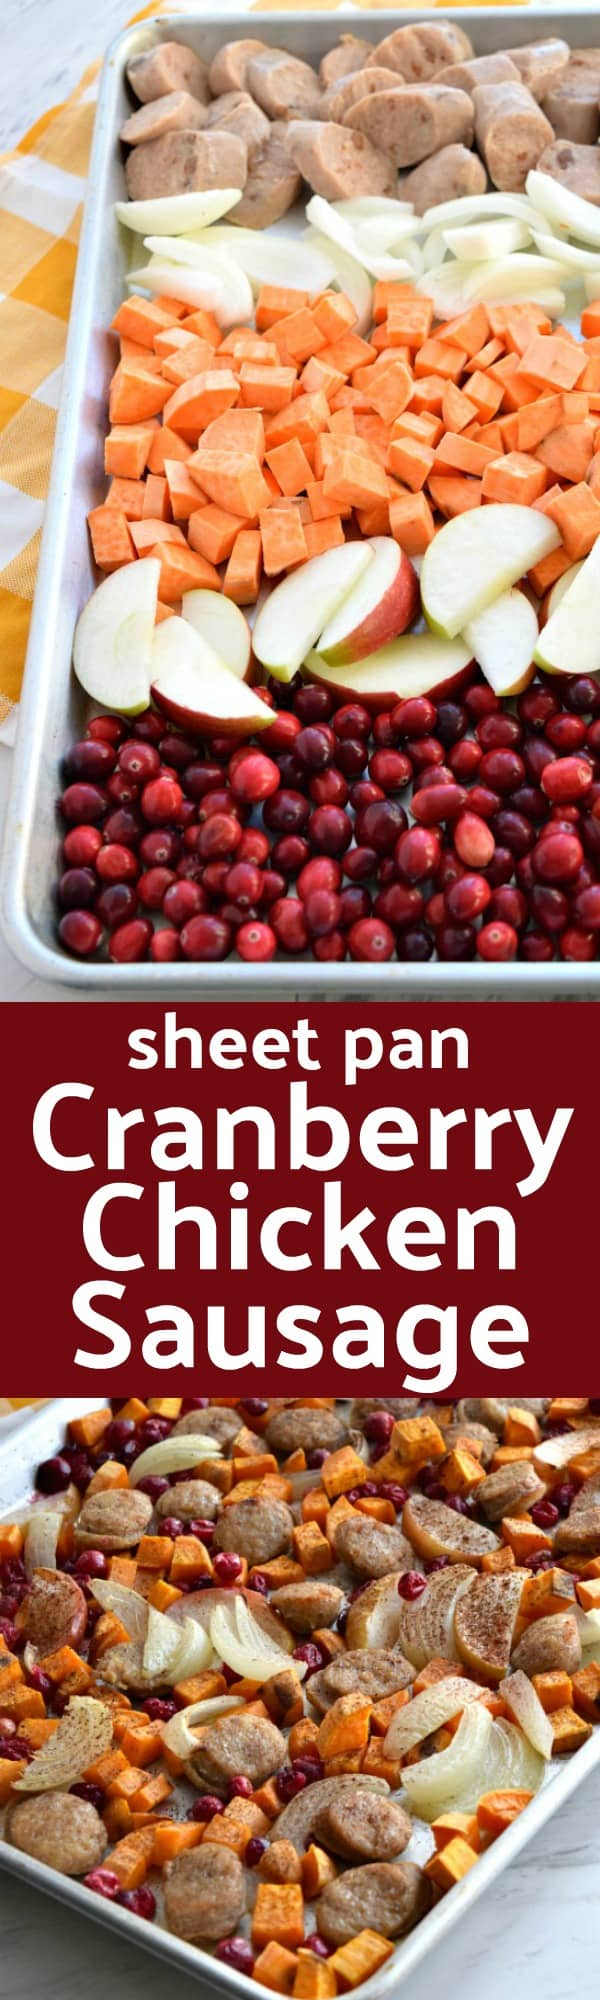 Close up of colorful uncooked Sheet Pan Cranberry Chicken Sausage Pinterest Pin #sheetpan #cranberry #dinnerideas